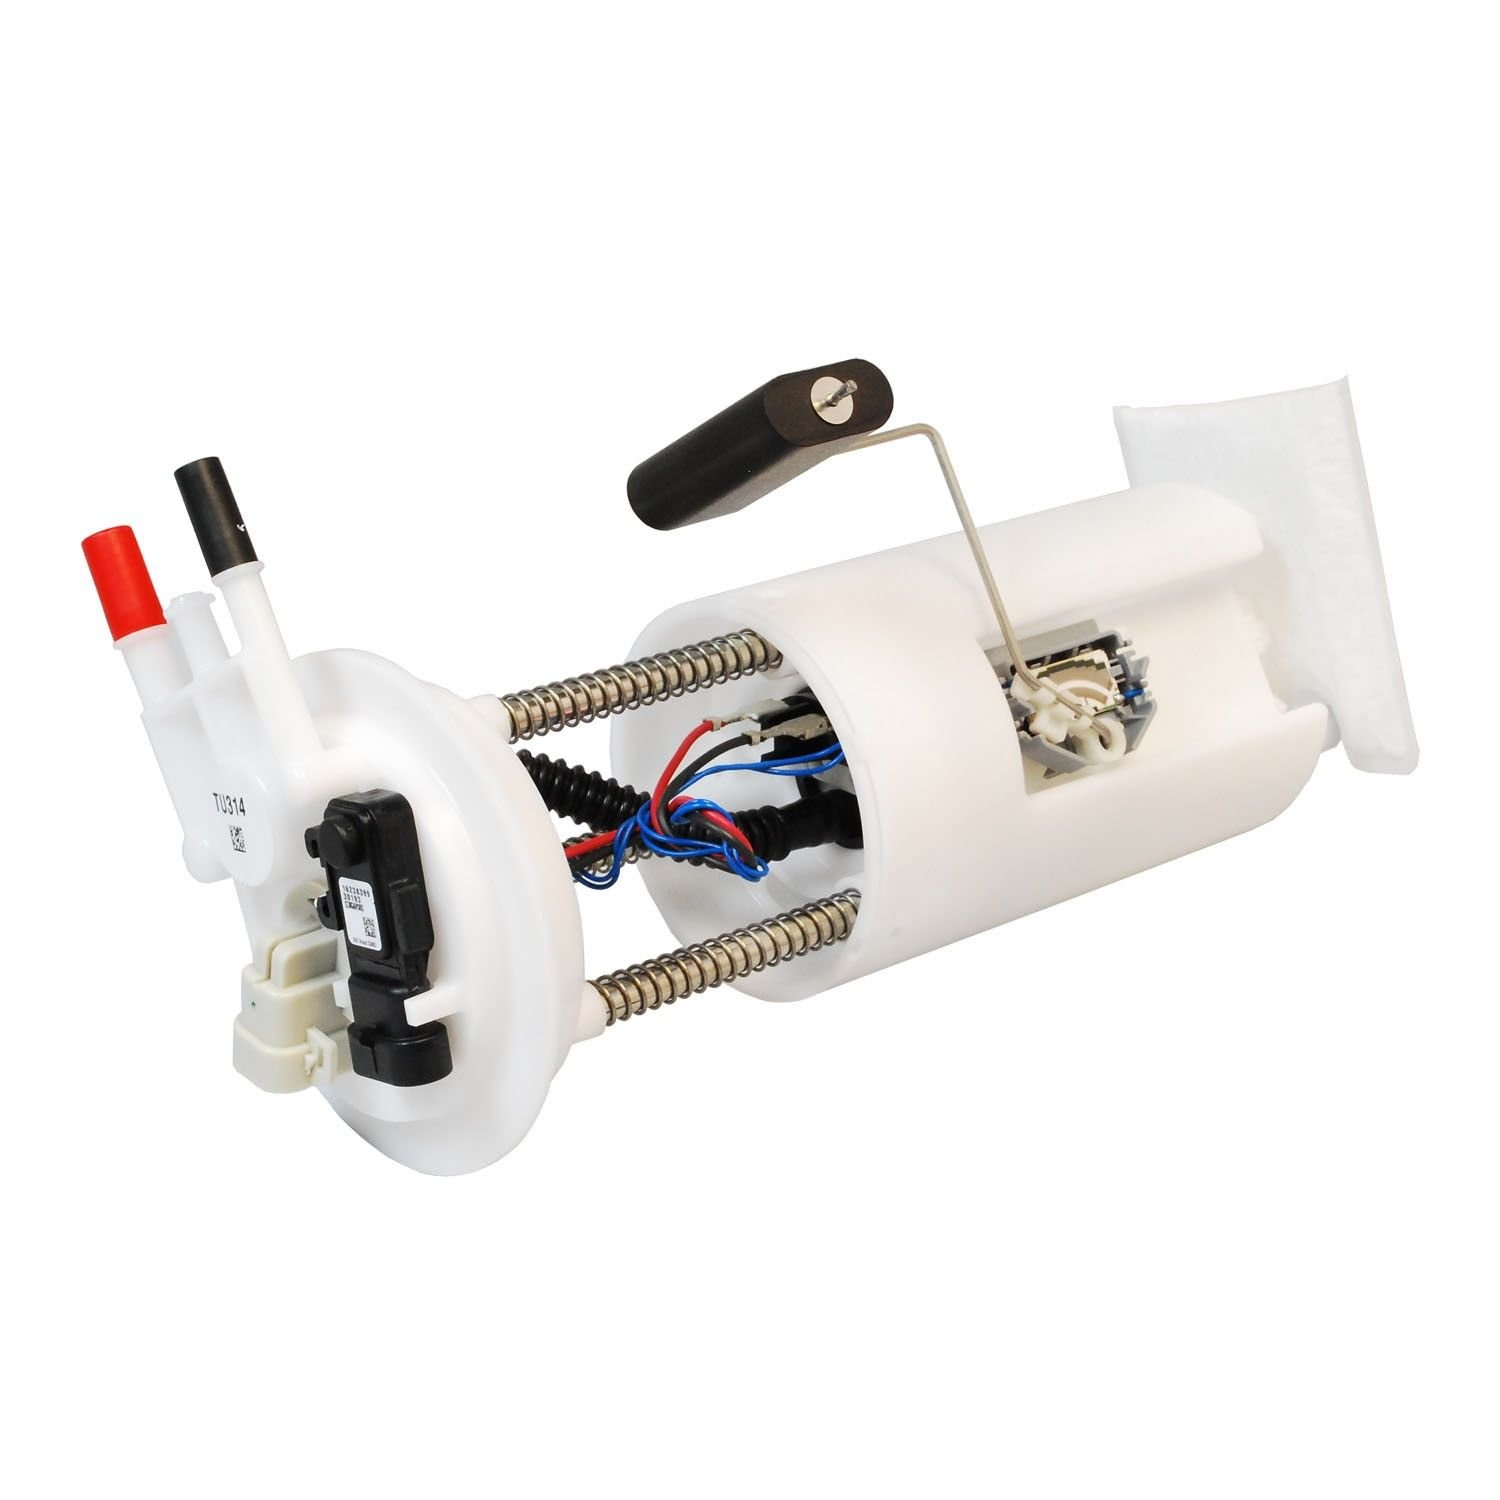 5E204D1 isuzu rodeo fuel pump module assembly replacement (airtex Honda Civic Fuel Pump Wiring at gsmx.co